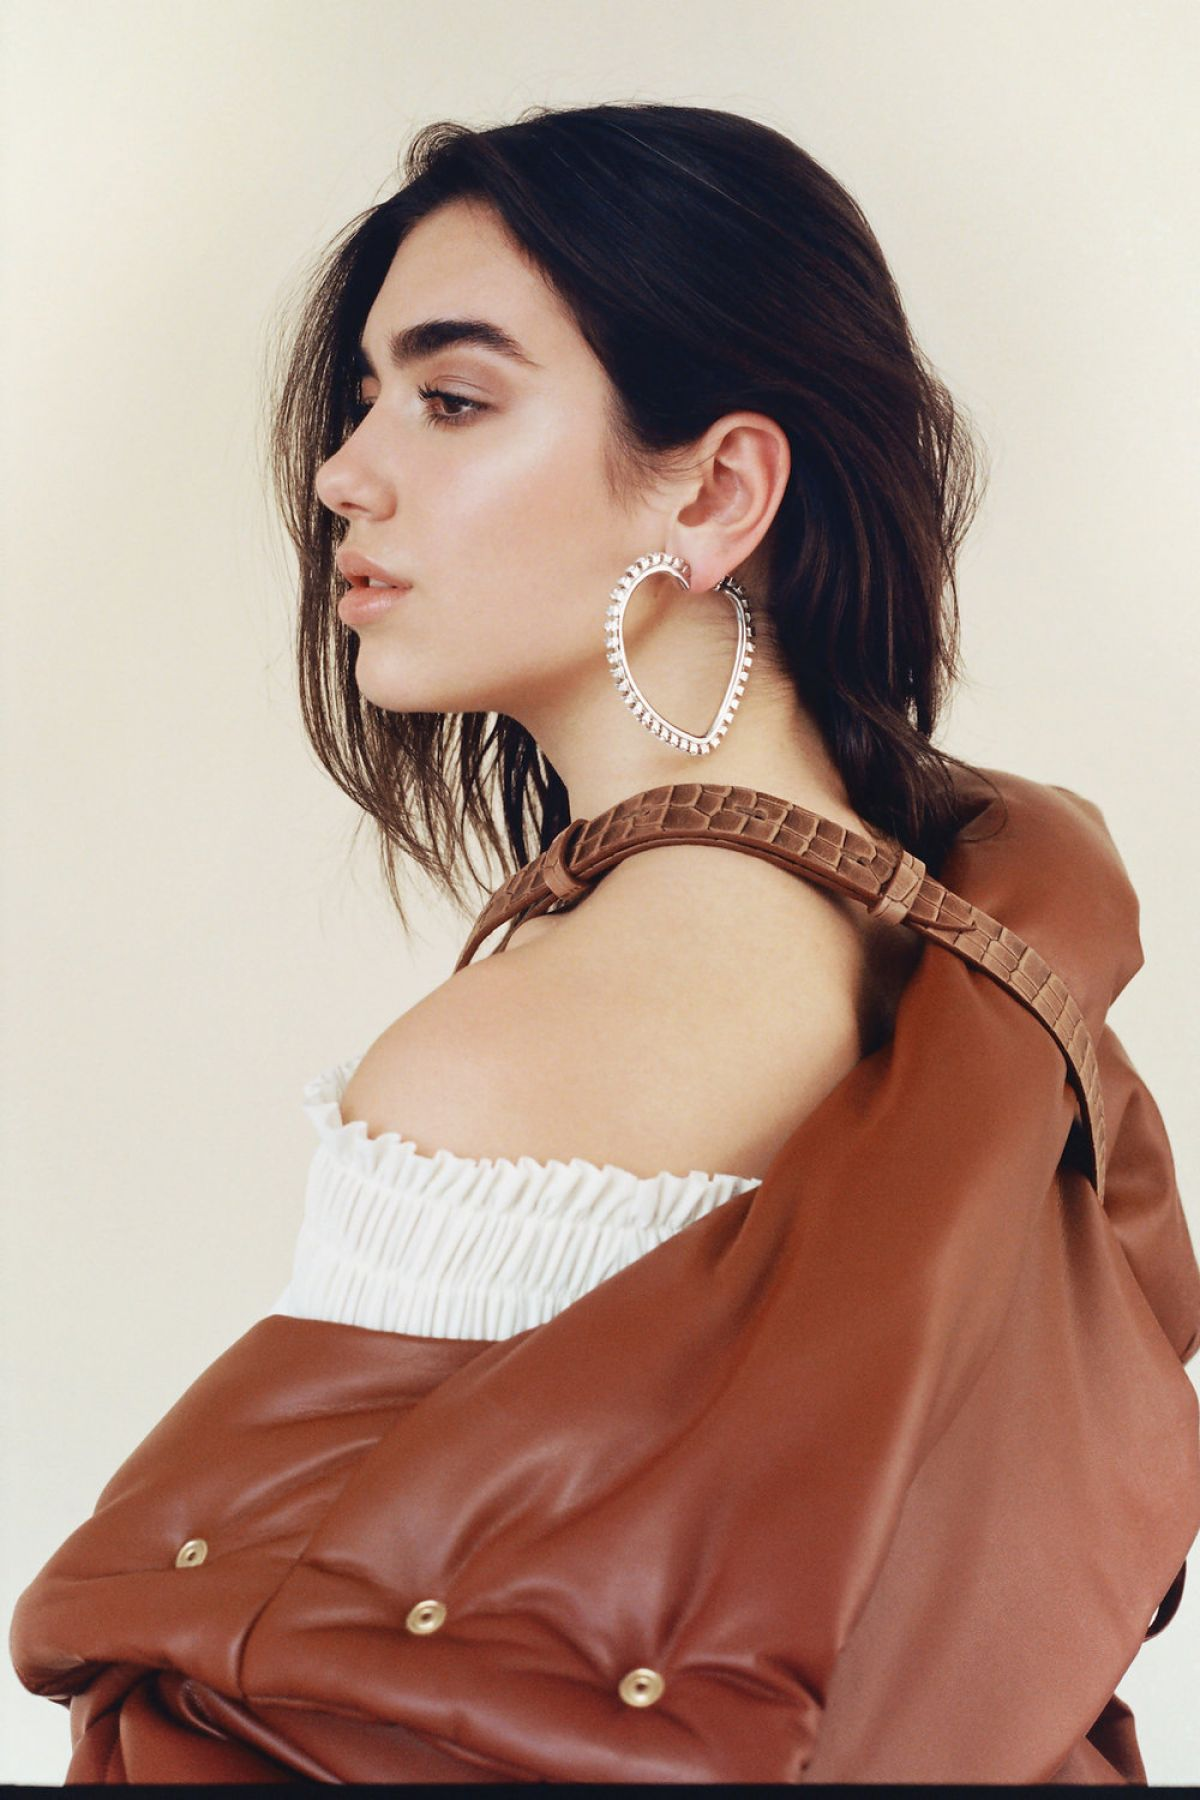 dua-lipa-for-modzik-magazine-2017_2.jpg